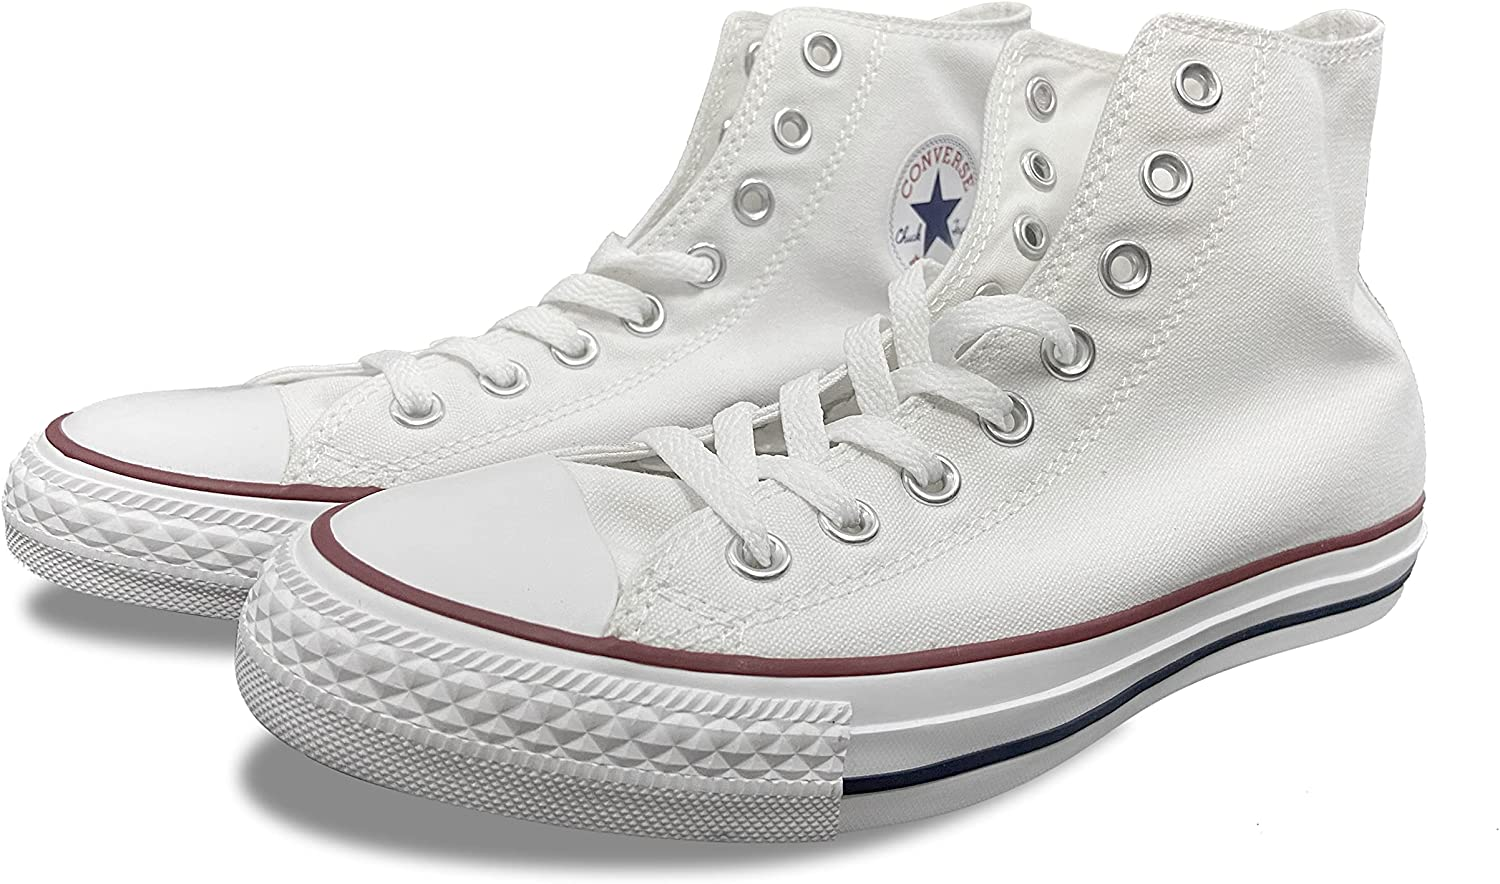 Conv Men's Low Tops Canvas Miami Mall Replacement Women for Sale Special Price Converse Shoes